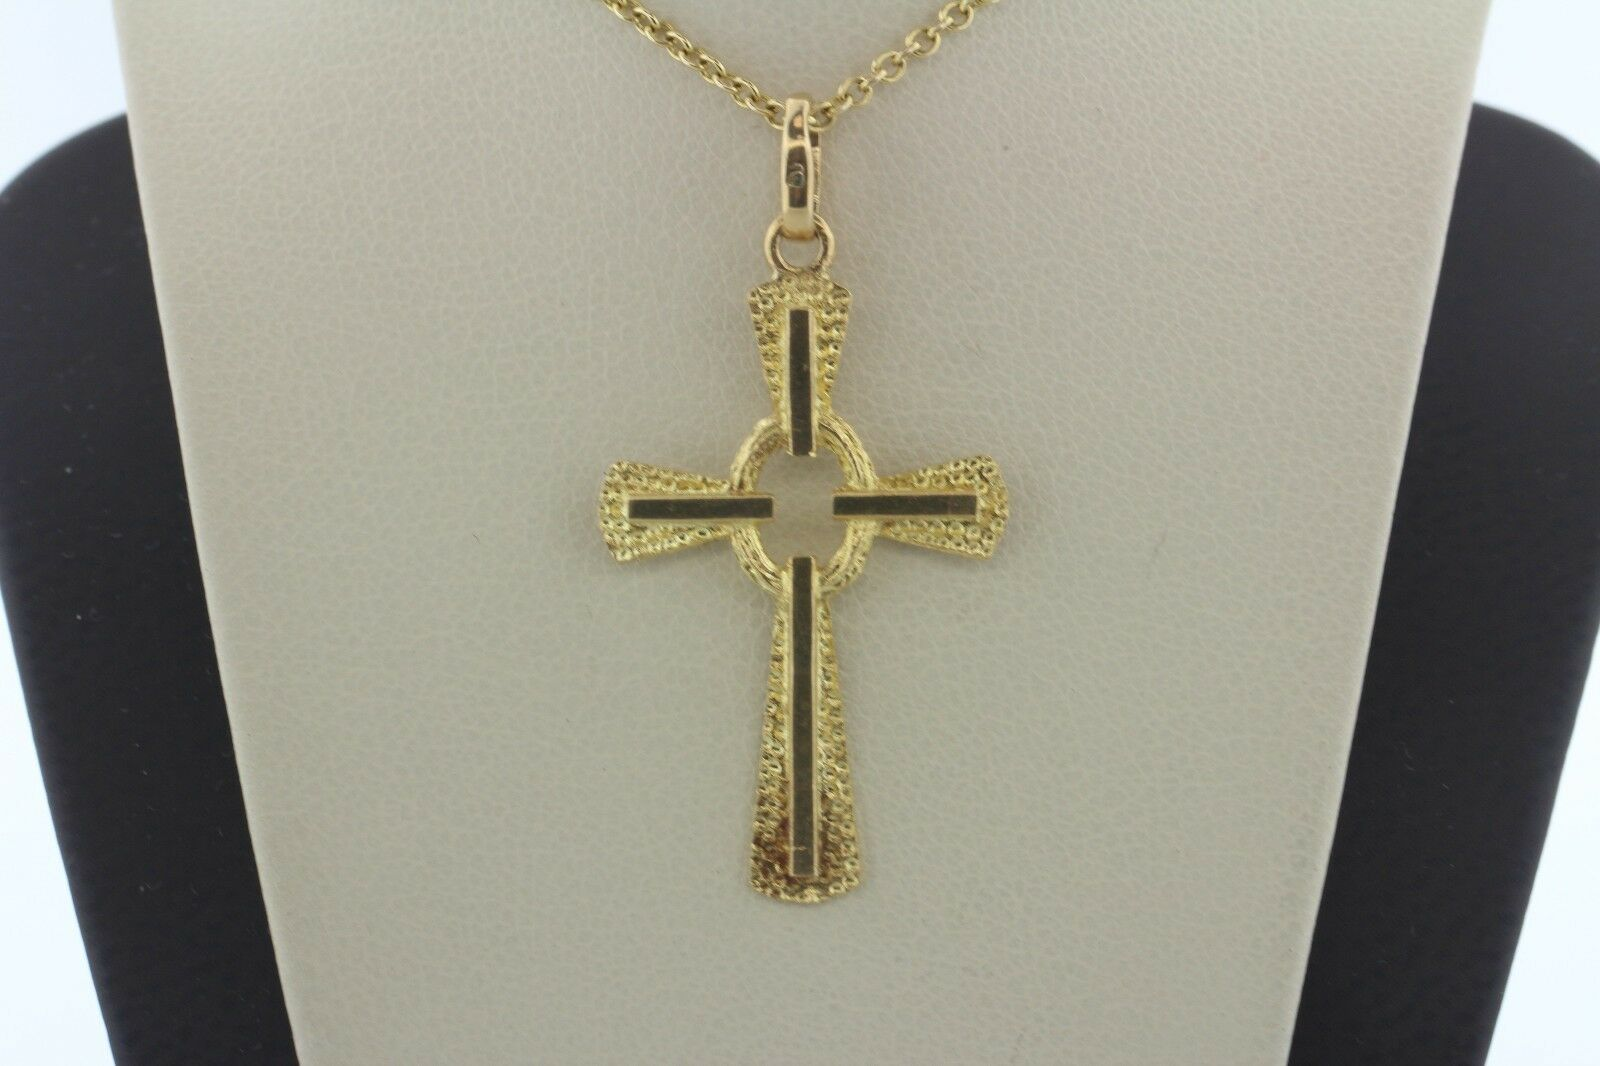 14K Yellow gold Hammered Textured Double Layer Cross Charm Pendant